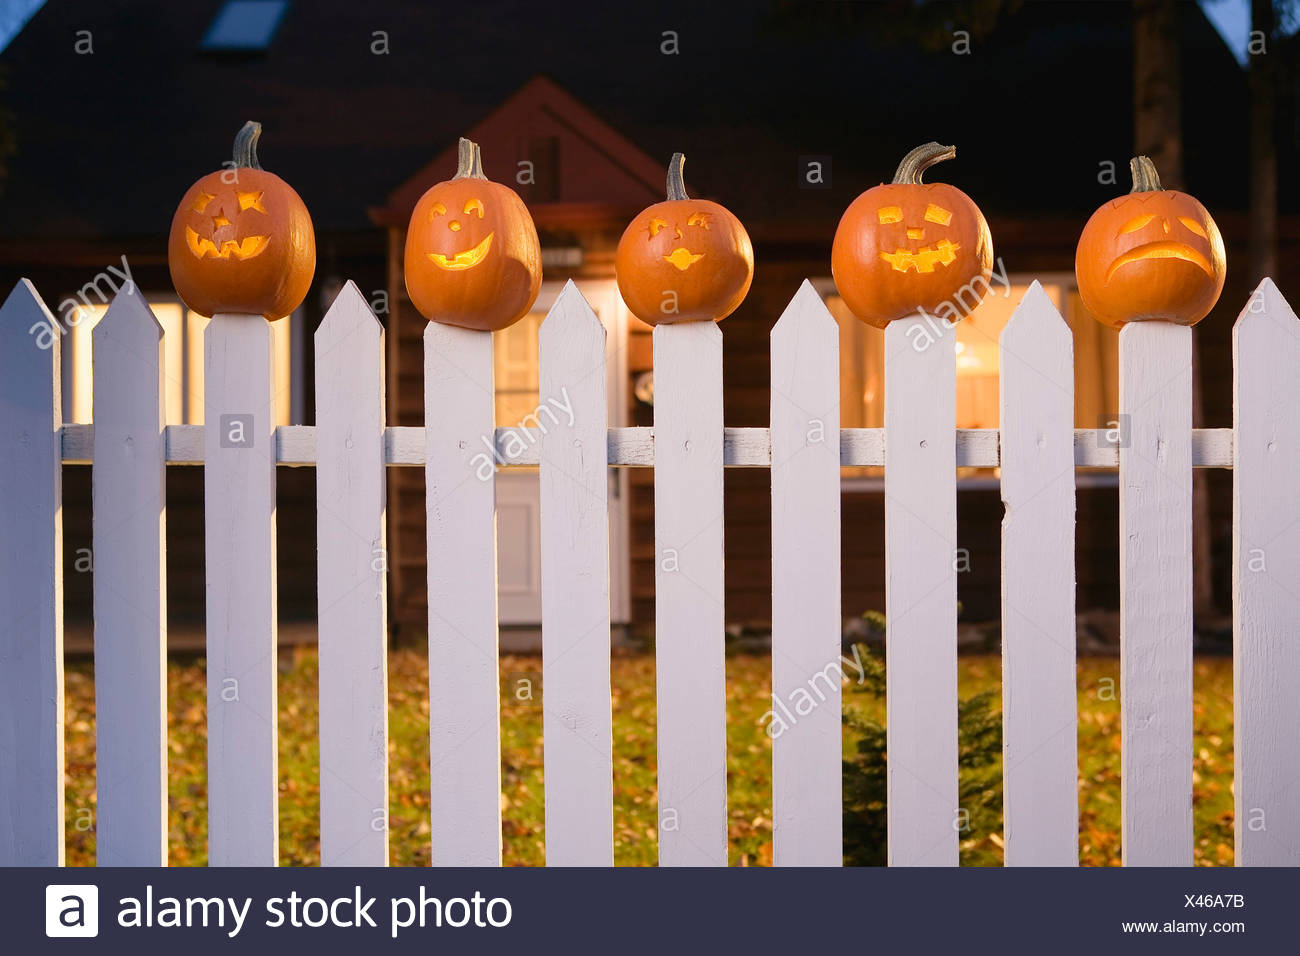 Jack-O-Lantern Faces Stuck On Top Of White Picktet Fence With A House In Background At Twilight During Fall In Alaska. Stock Photo